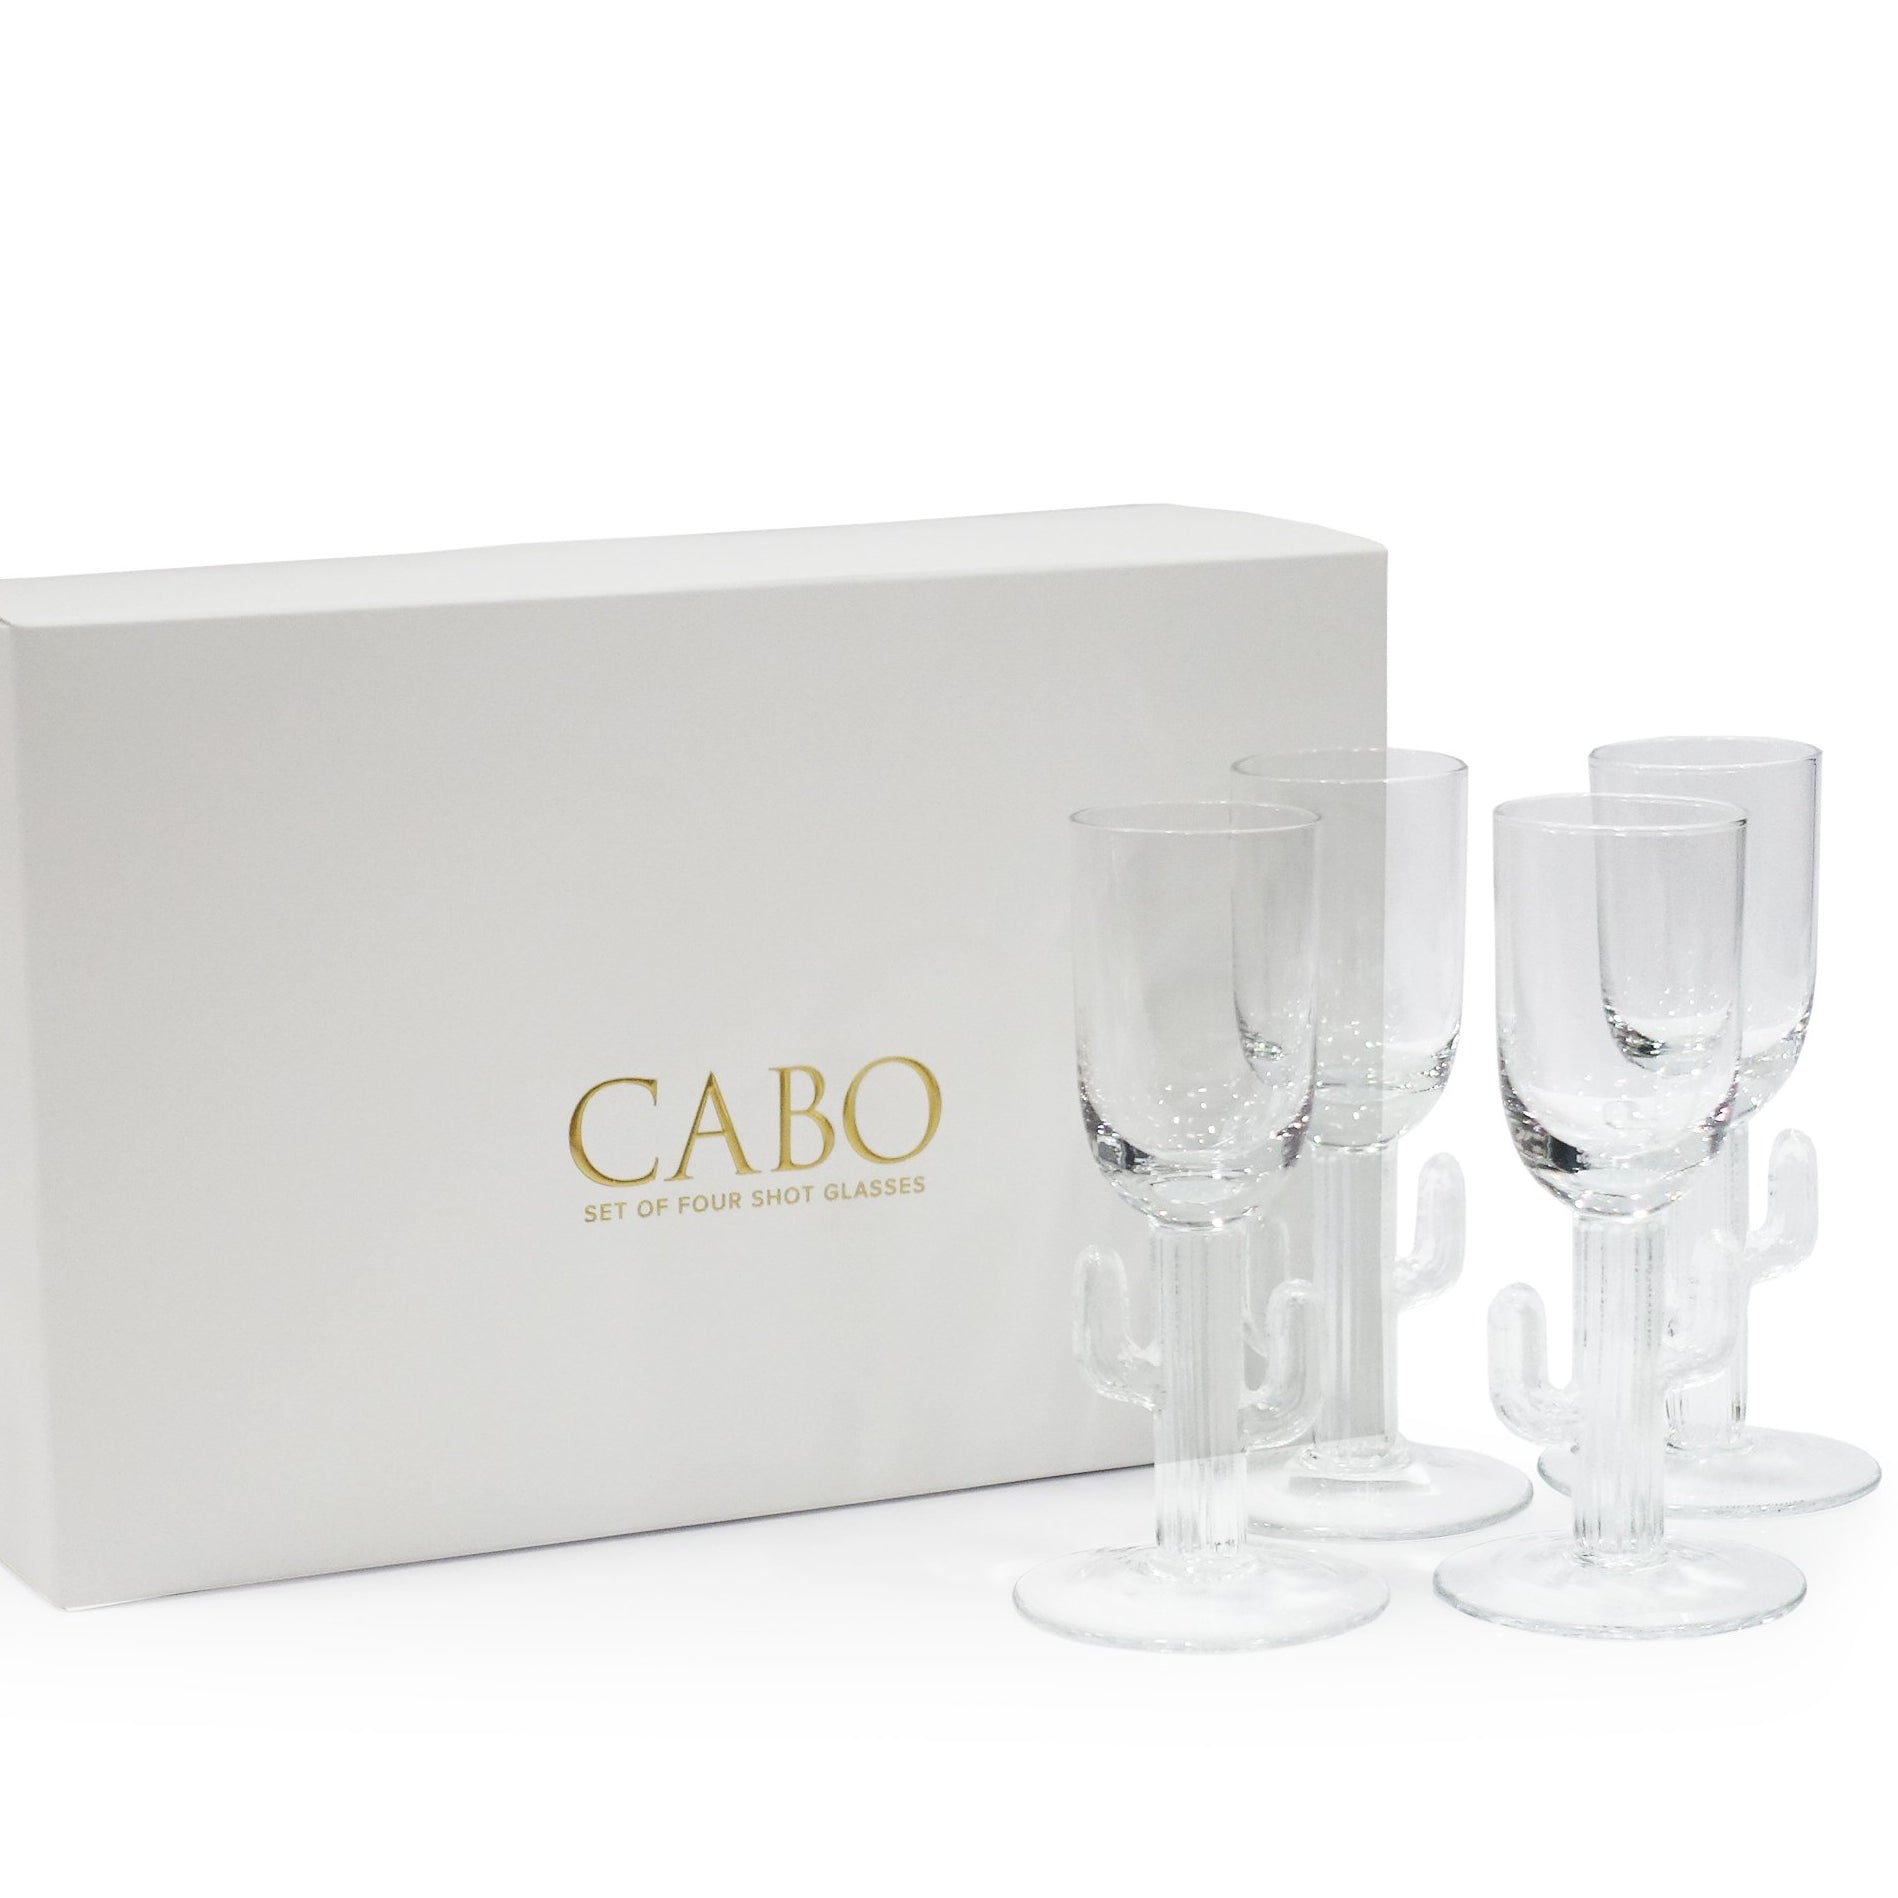 S/4 Cabo Cactus Shot Glass in Gift Box